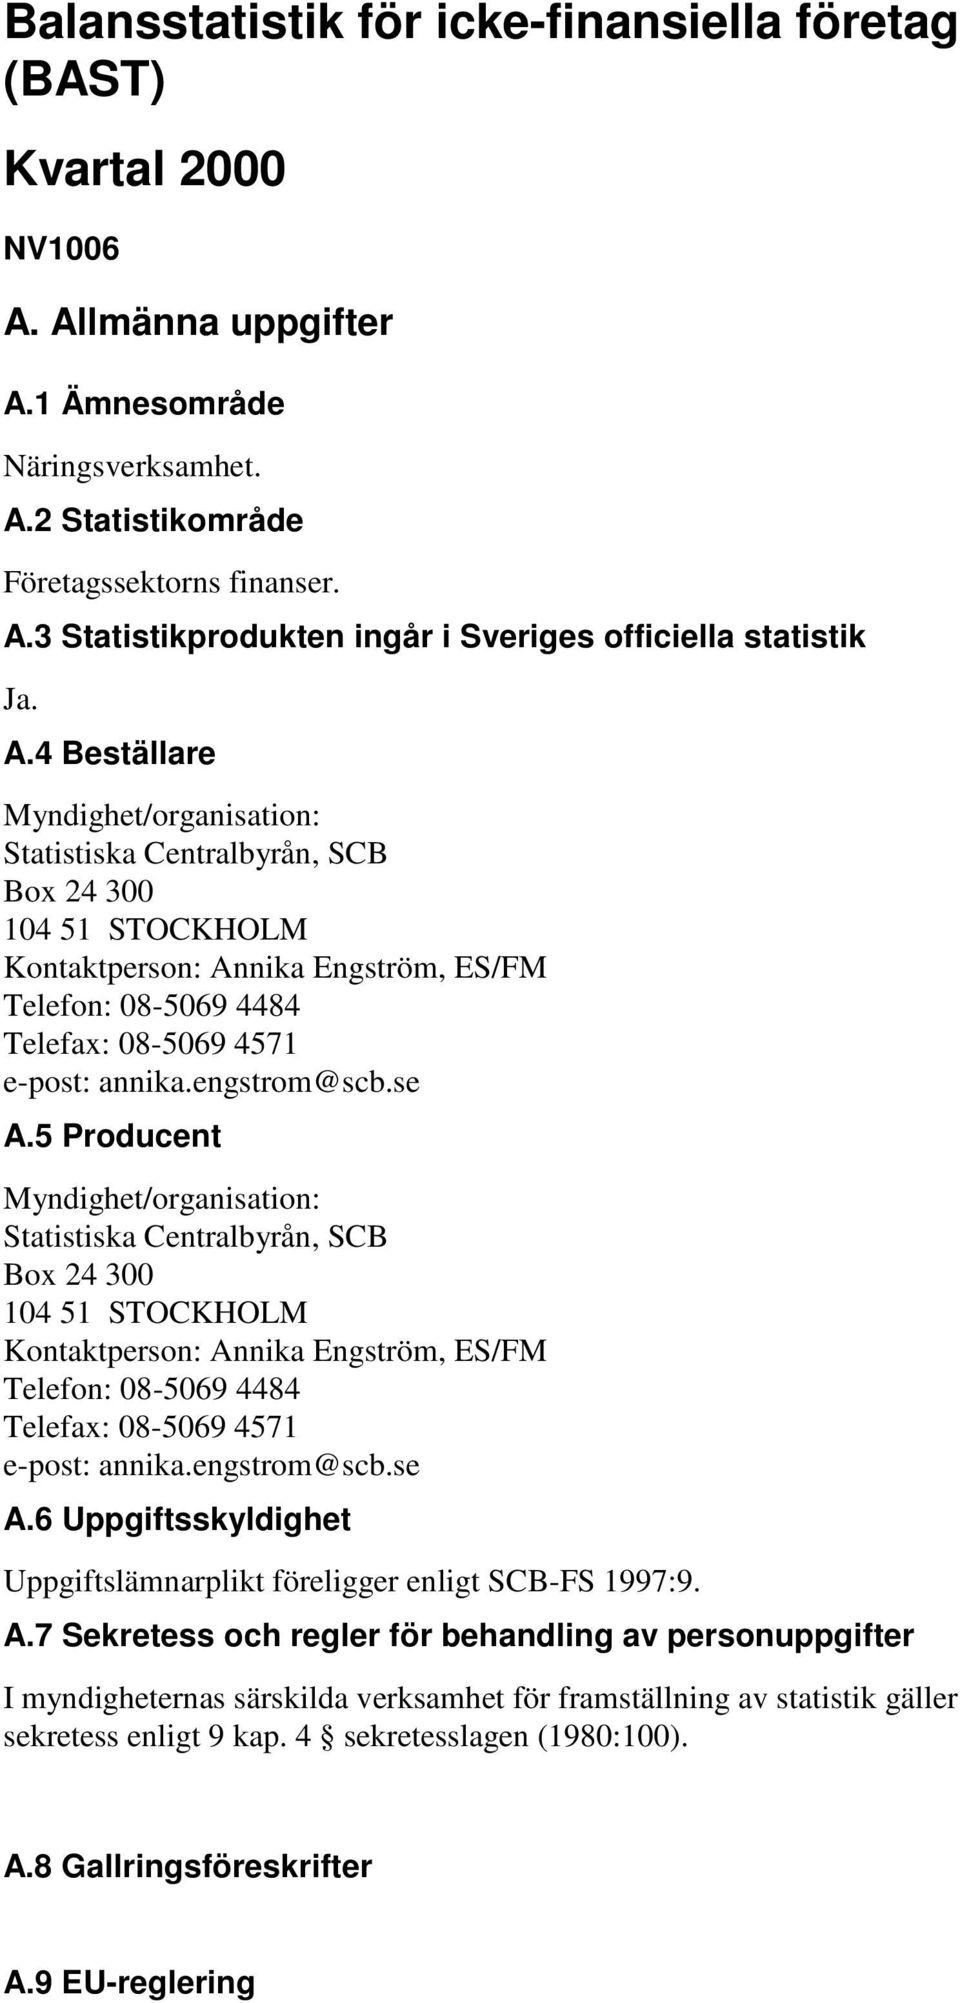 engstrom@scb.se A.